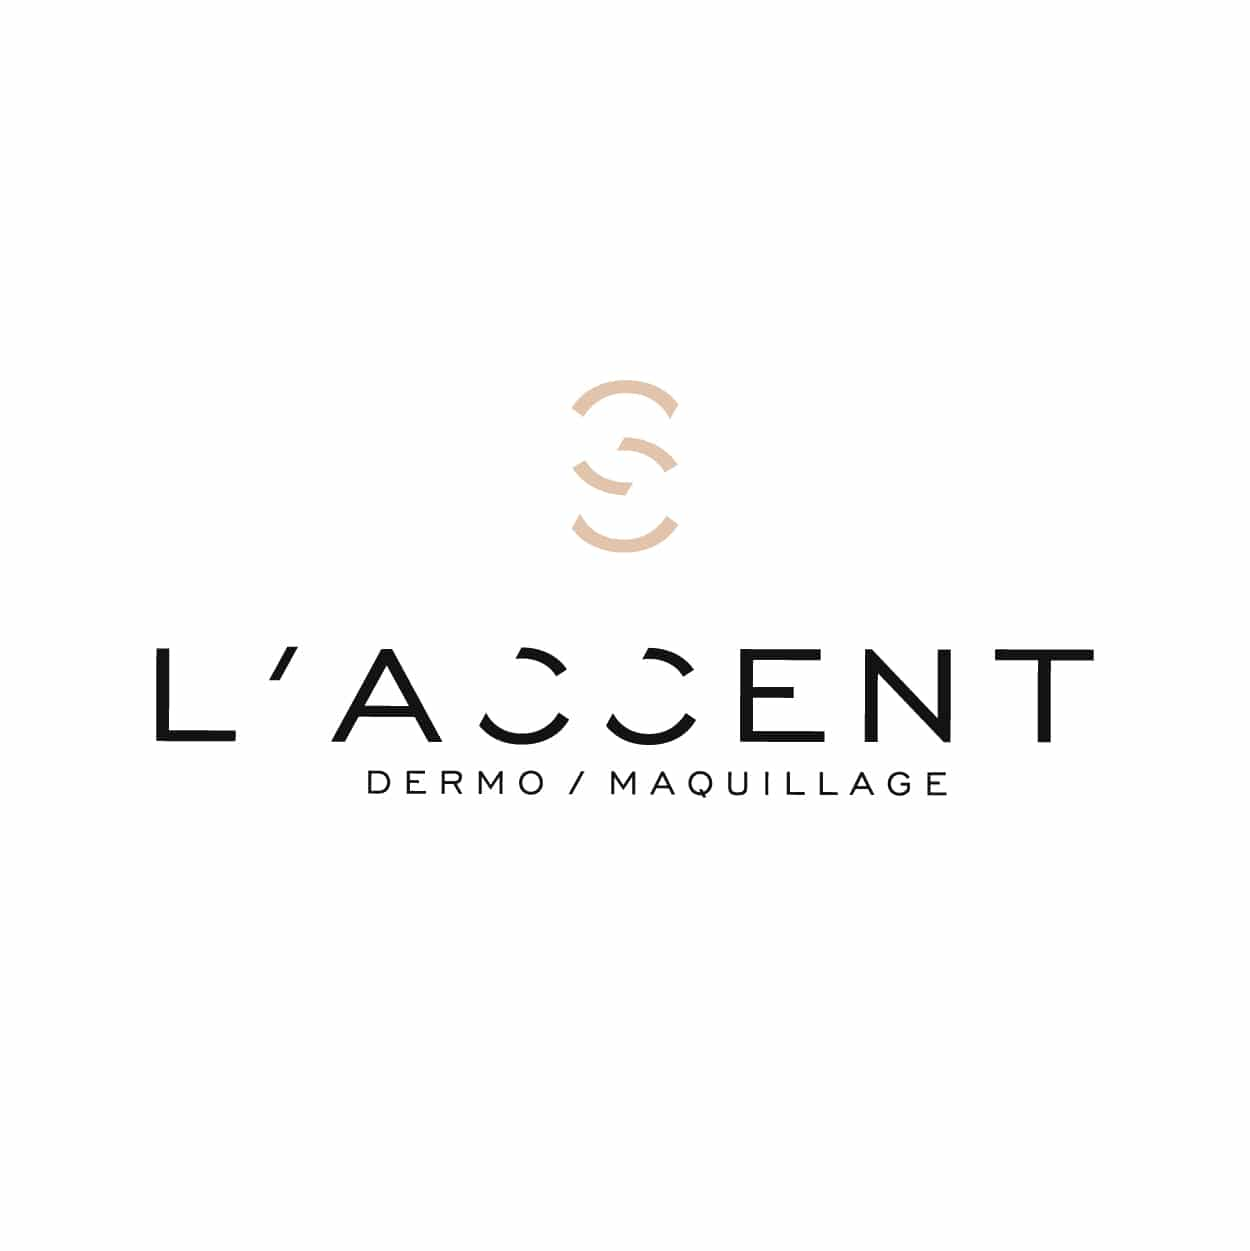 création graphique LOGO L'ACCENT DERMO MAQUILLAGE marque make-up made in france by1703FACTORY